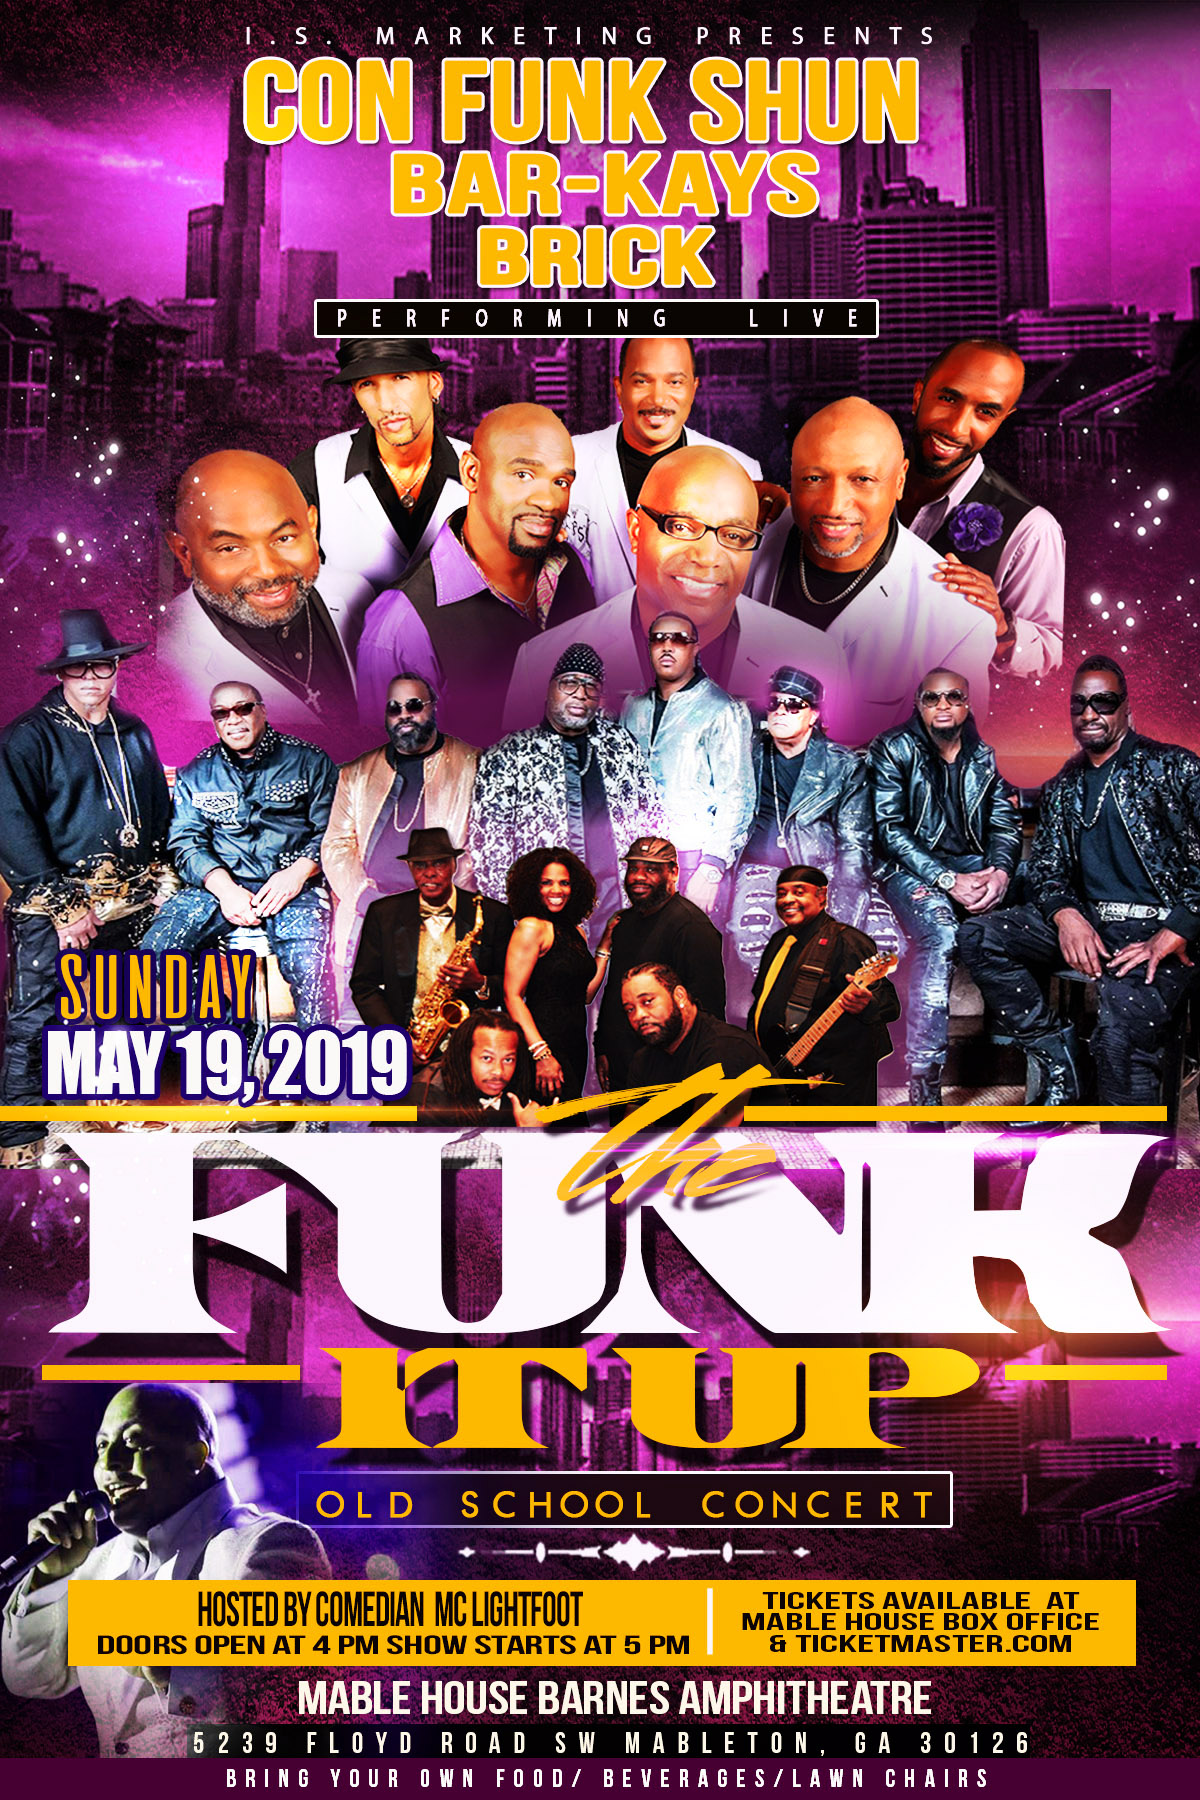 I.S. Marketing Presents: The Funk It Up Old School Concert